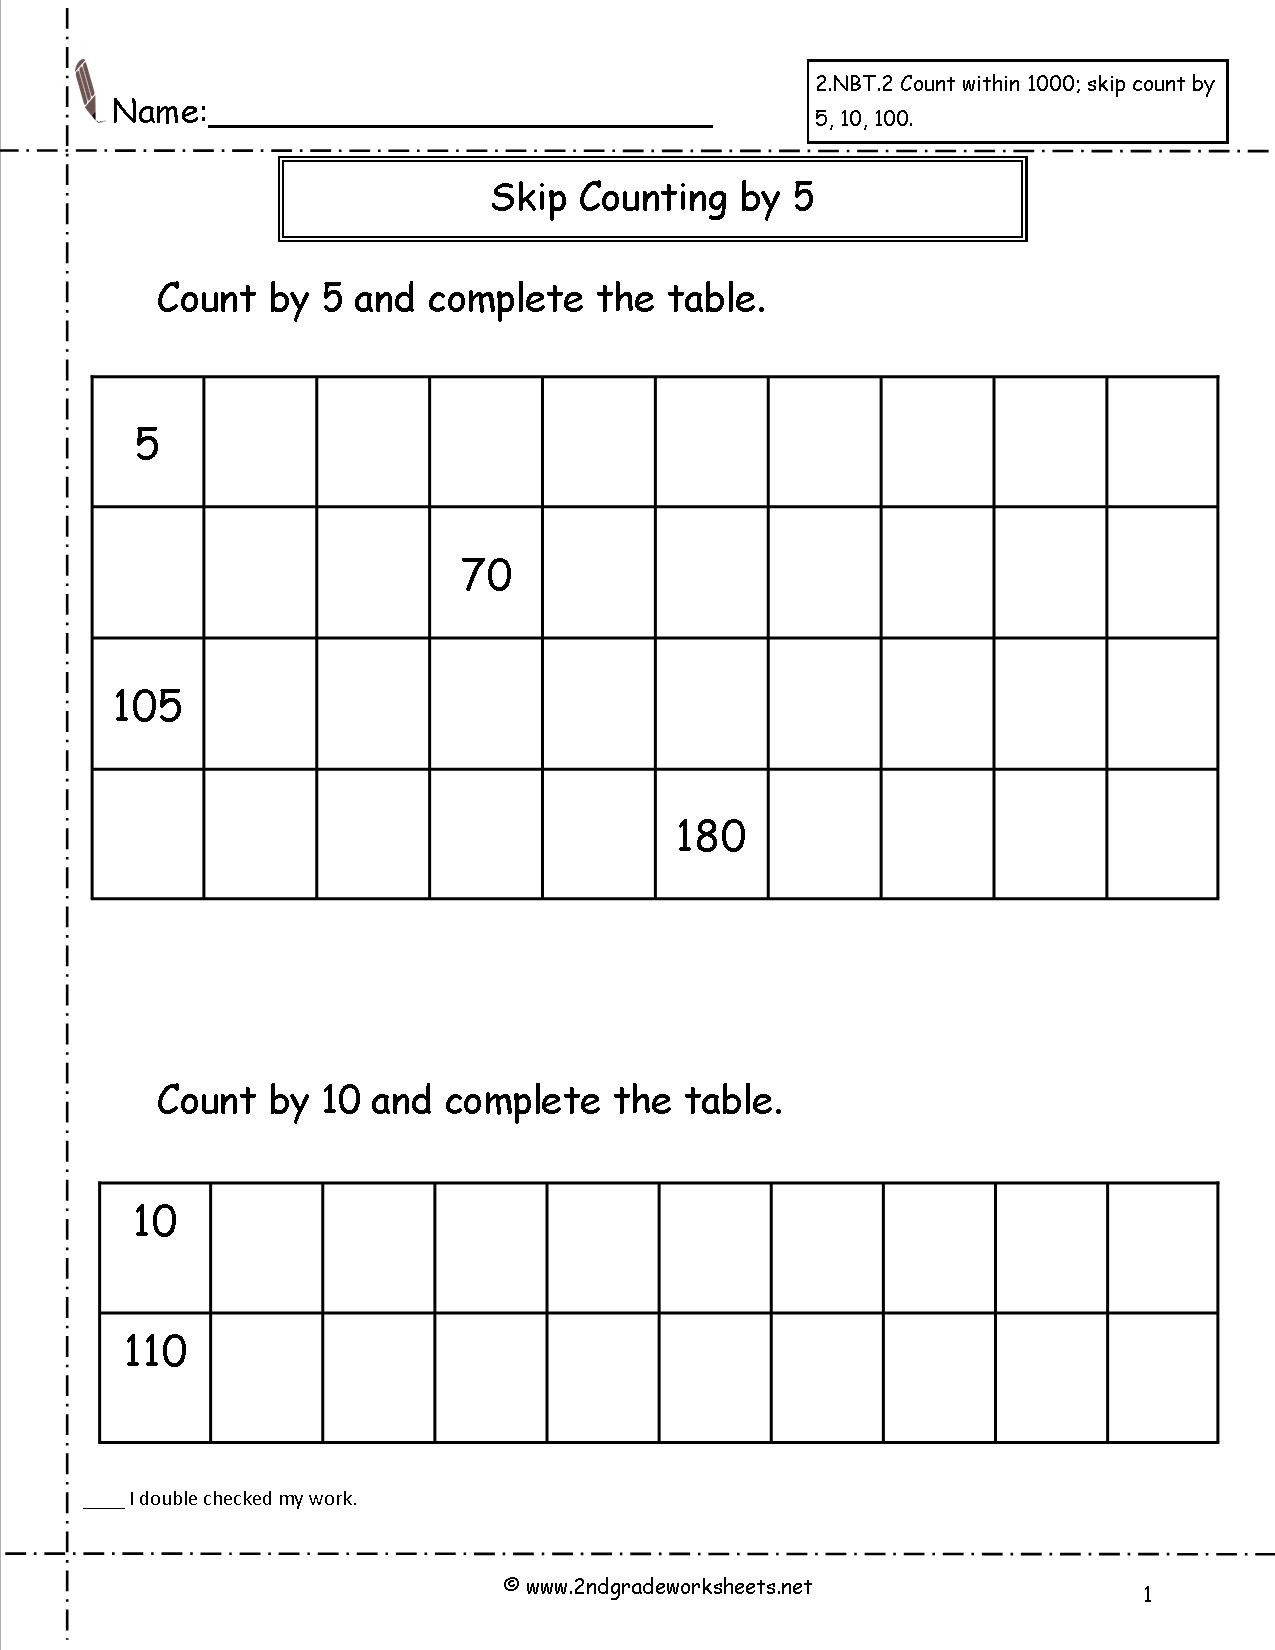 Skip Counting Worksheets 2nd Grade Fun is Fun Printable Two Digit Addition Worksheets Skip